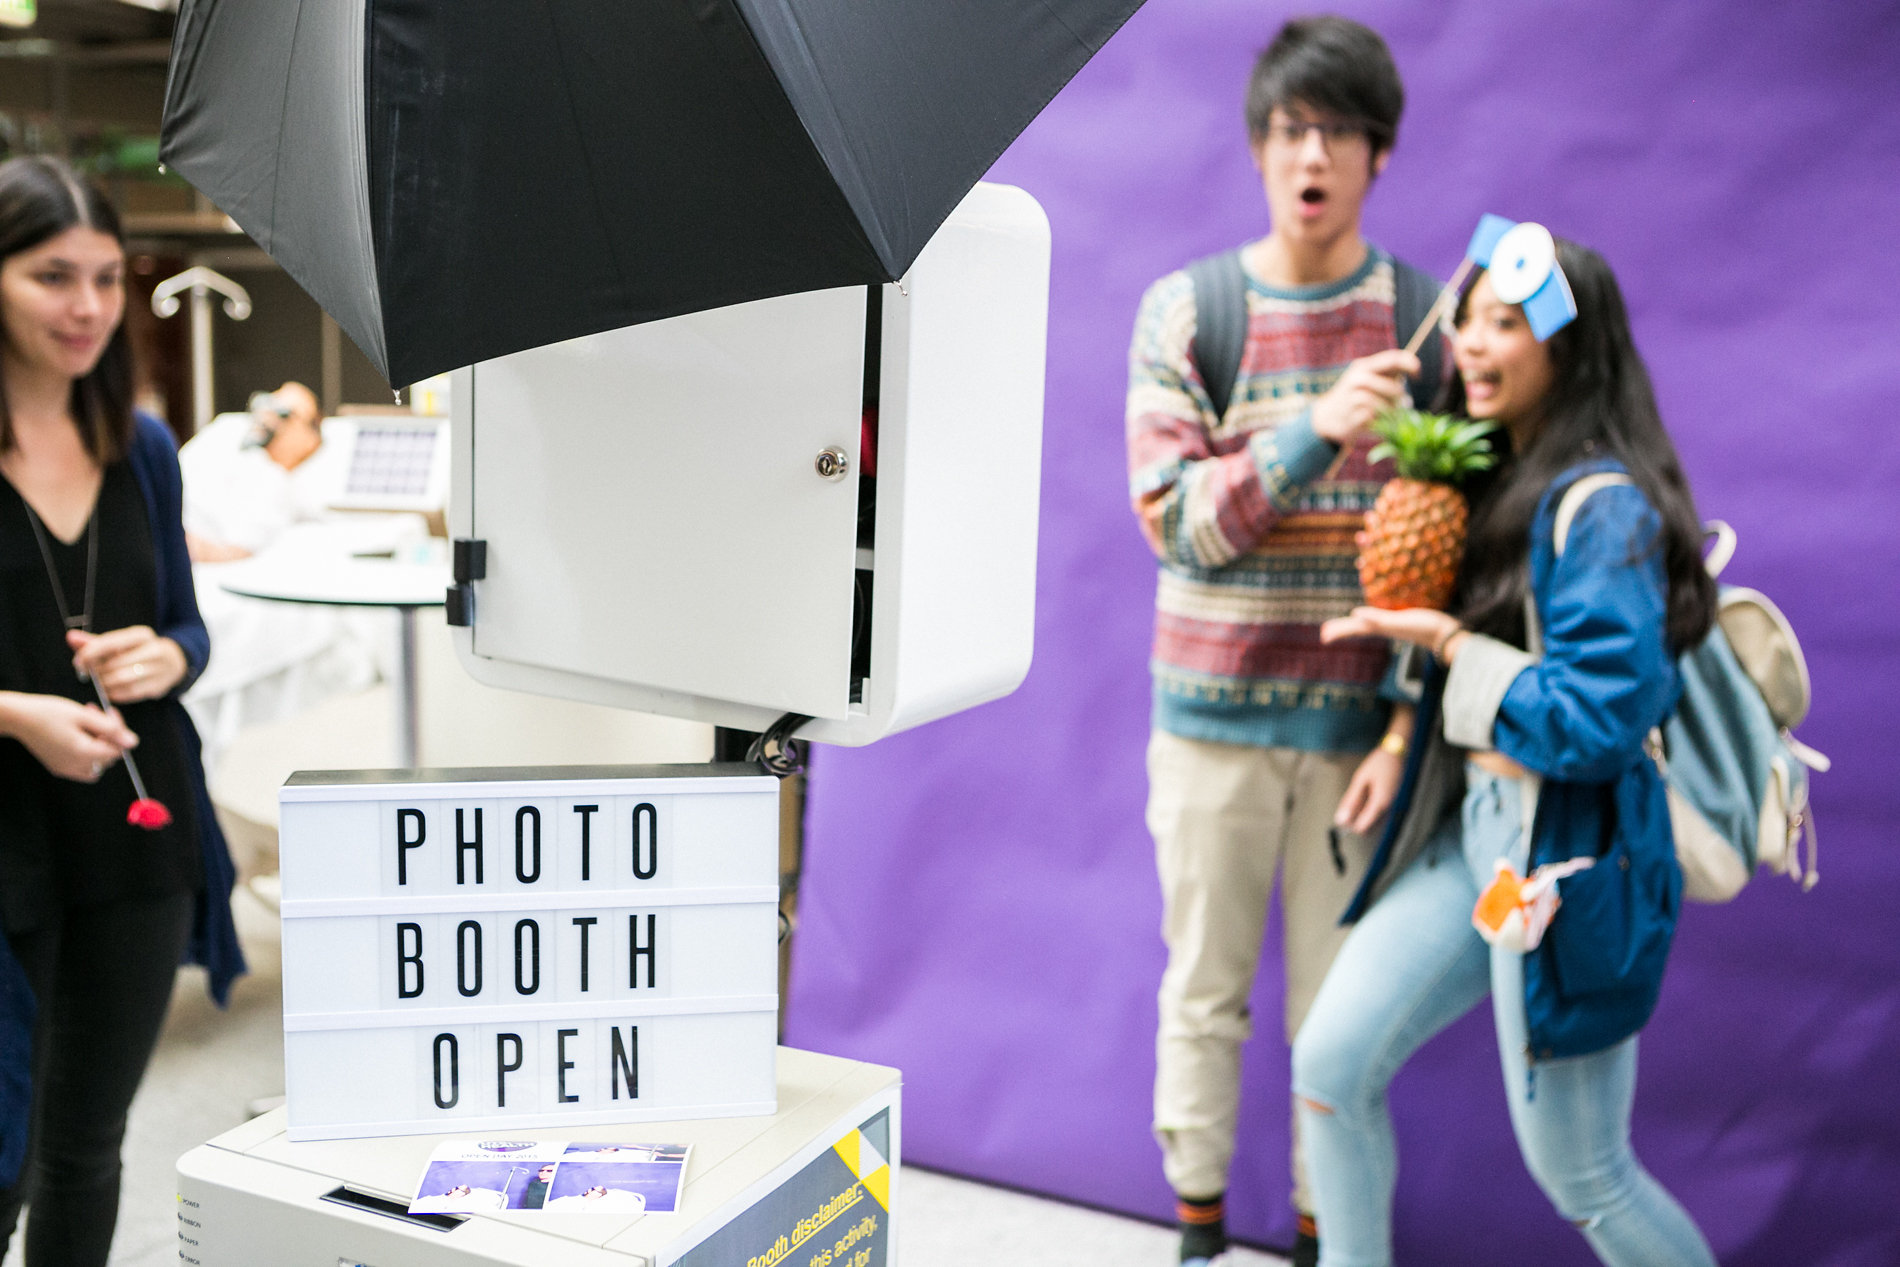 1.Entertainment_photo booth